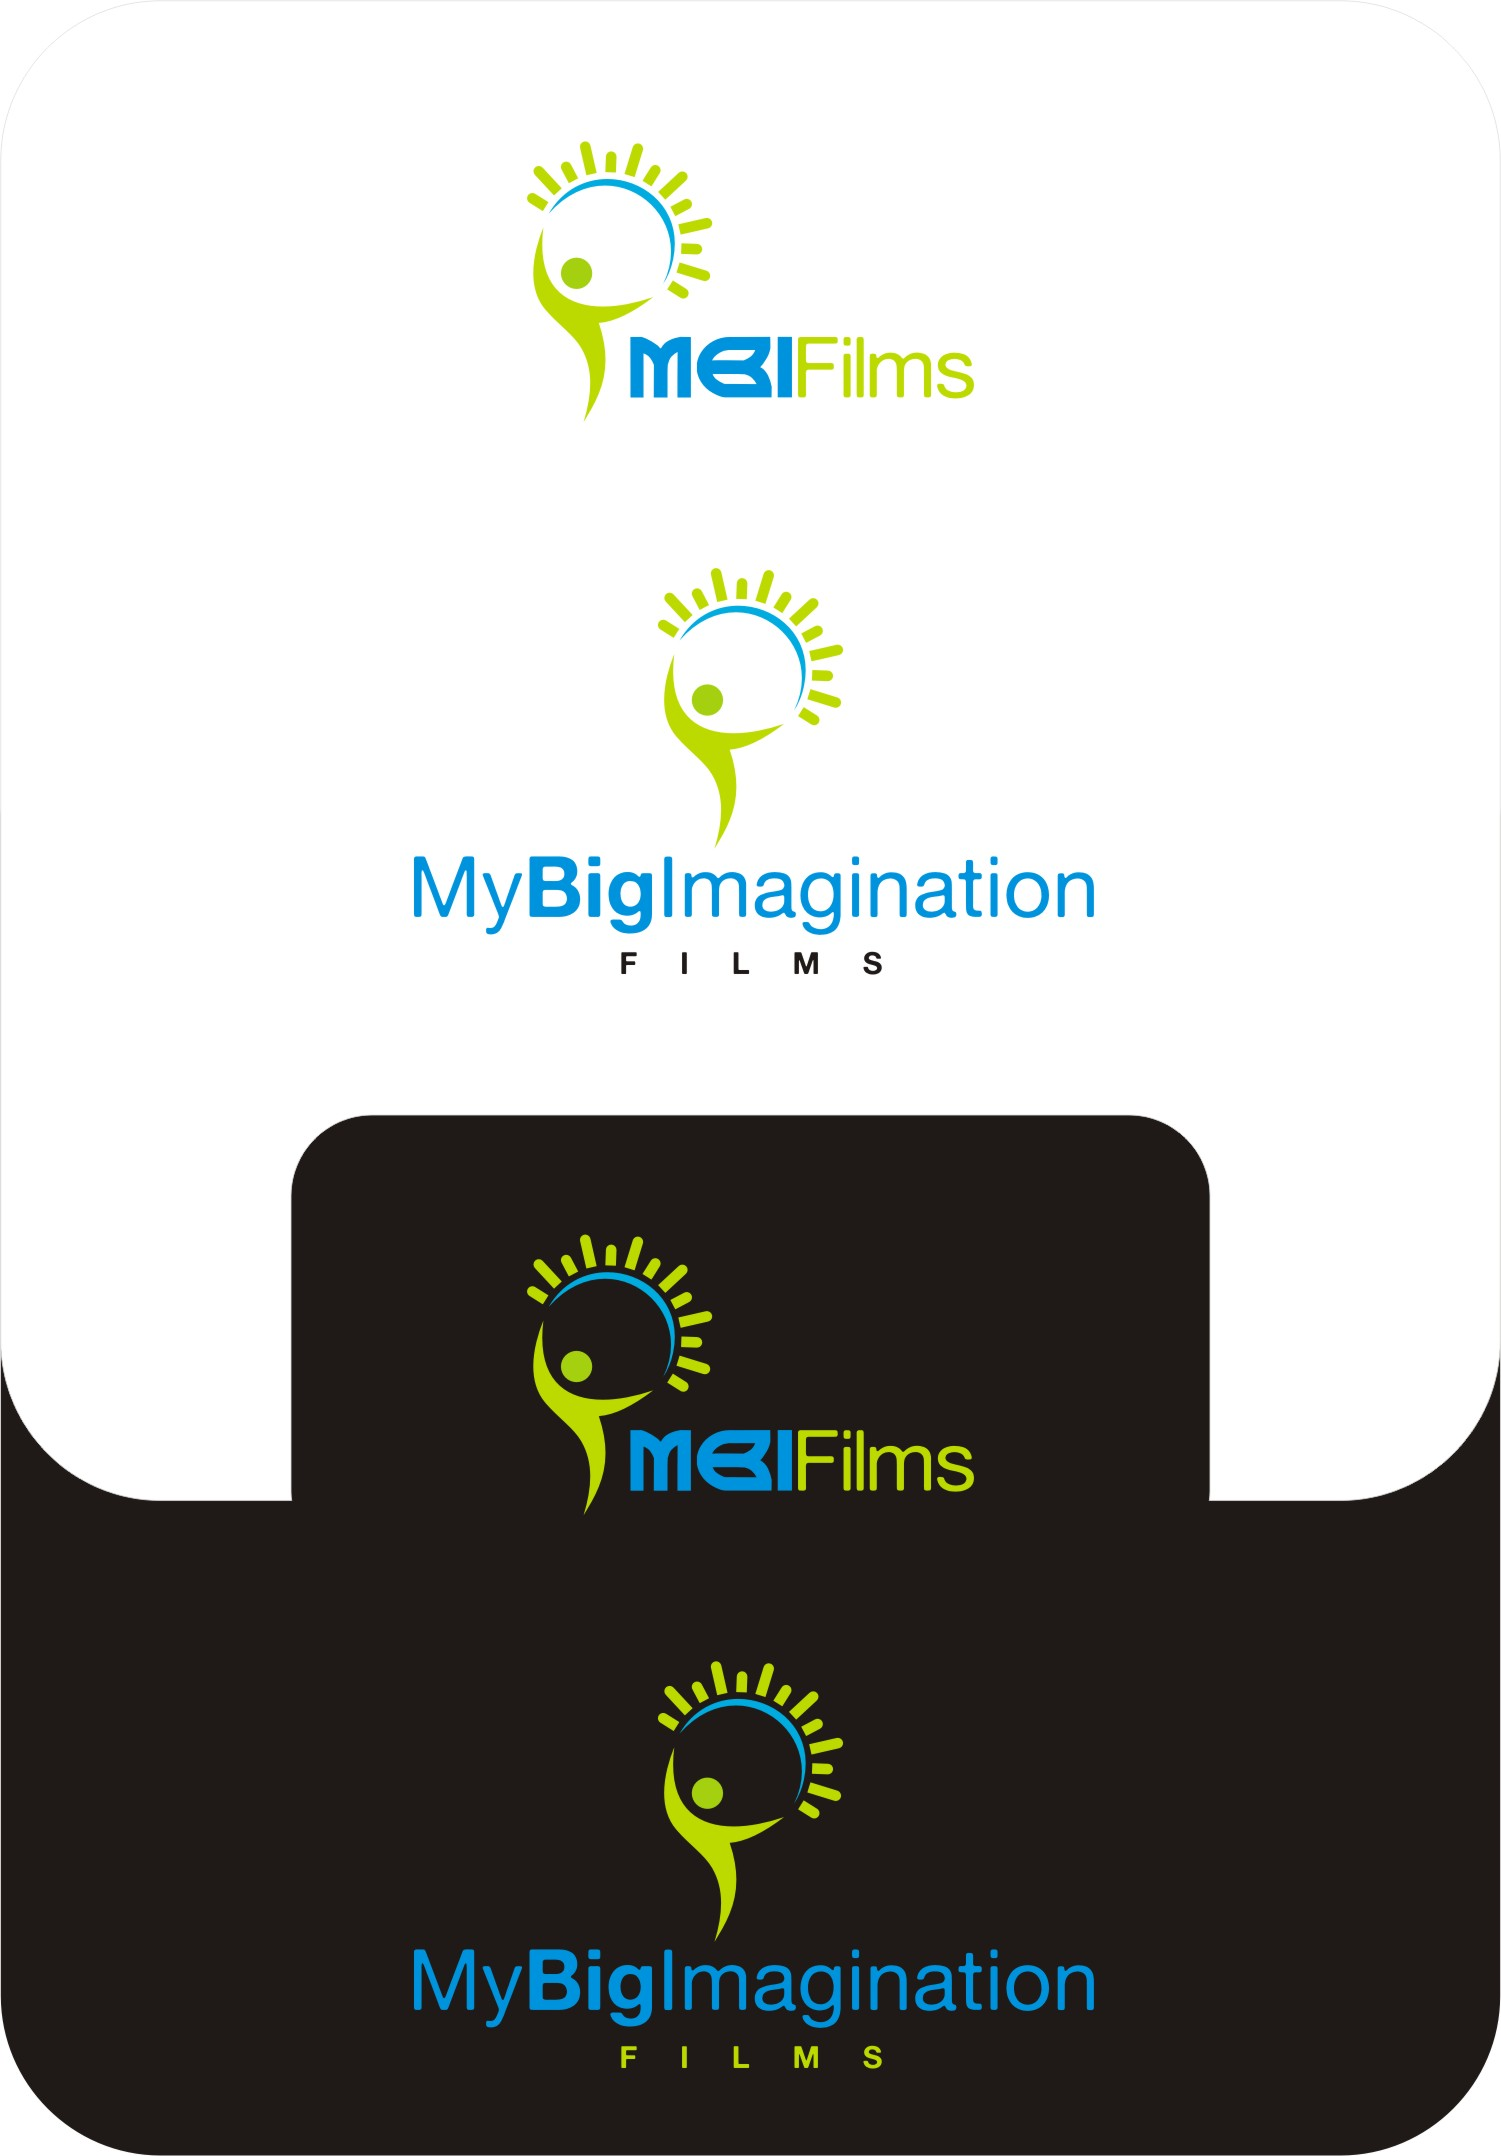 Logo Design job – My Big Imagination (MBI) Logo/Brand – Winning design by DesignRAJU